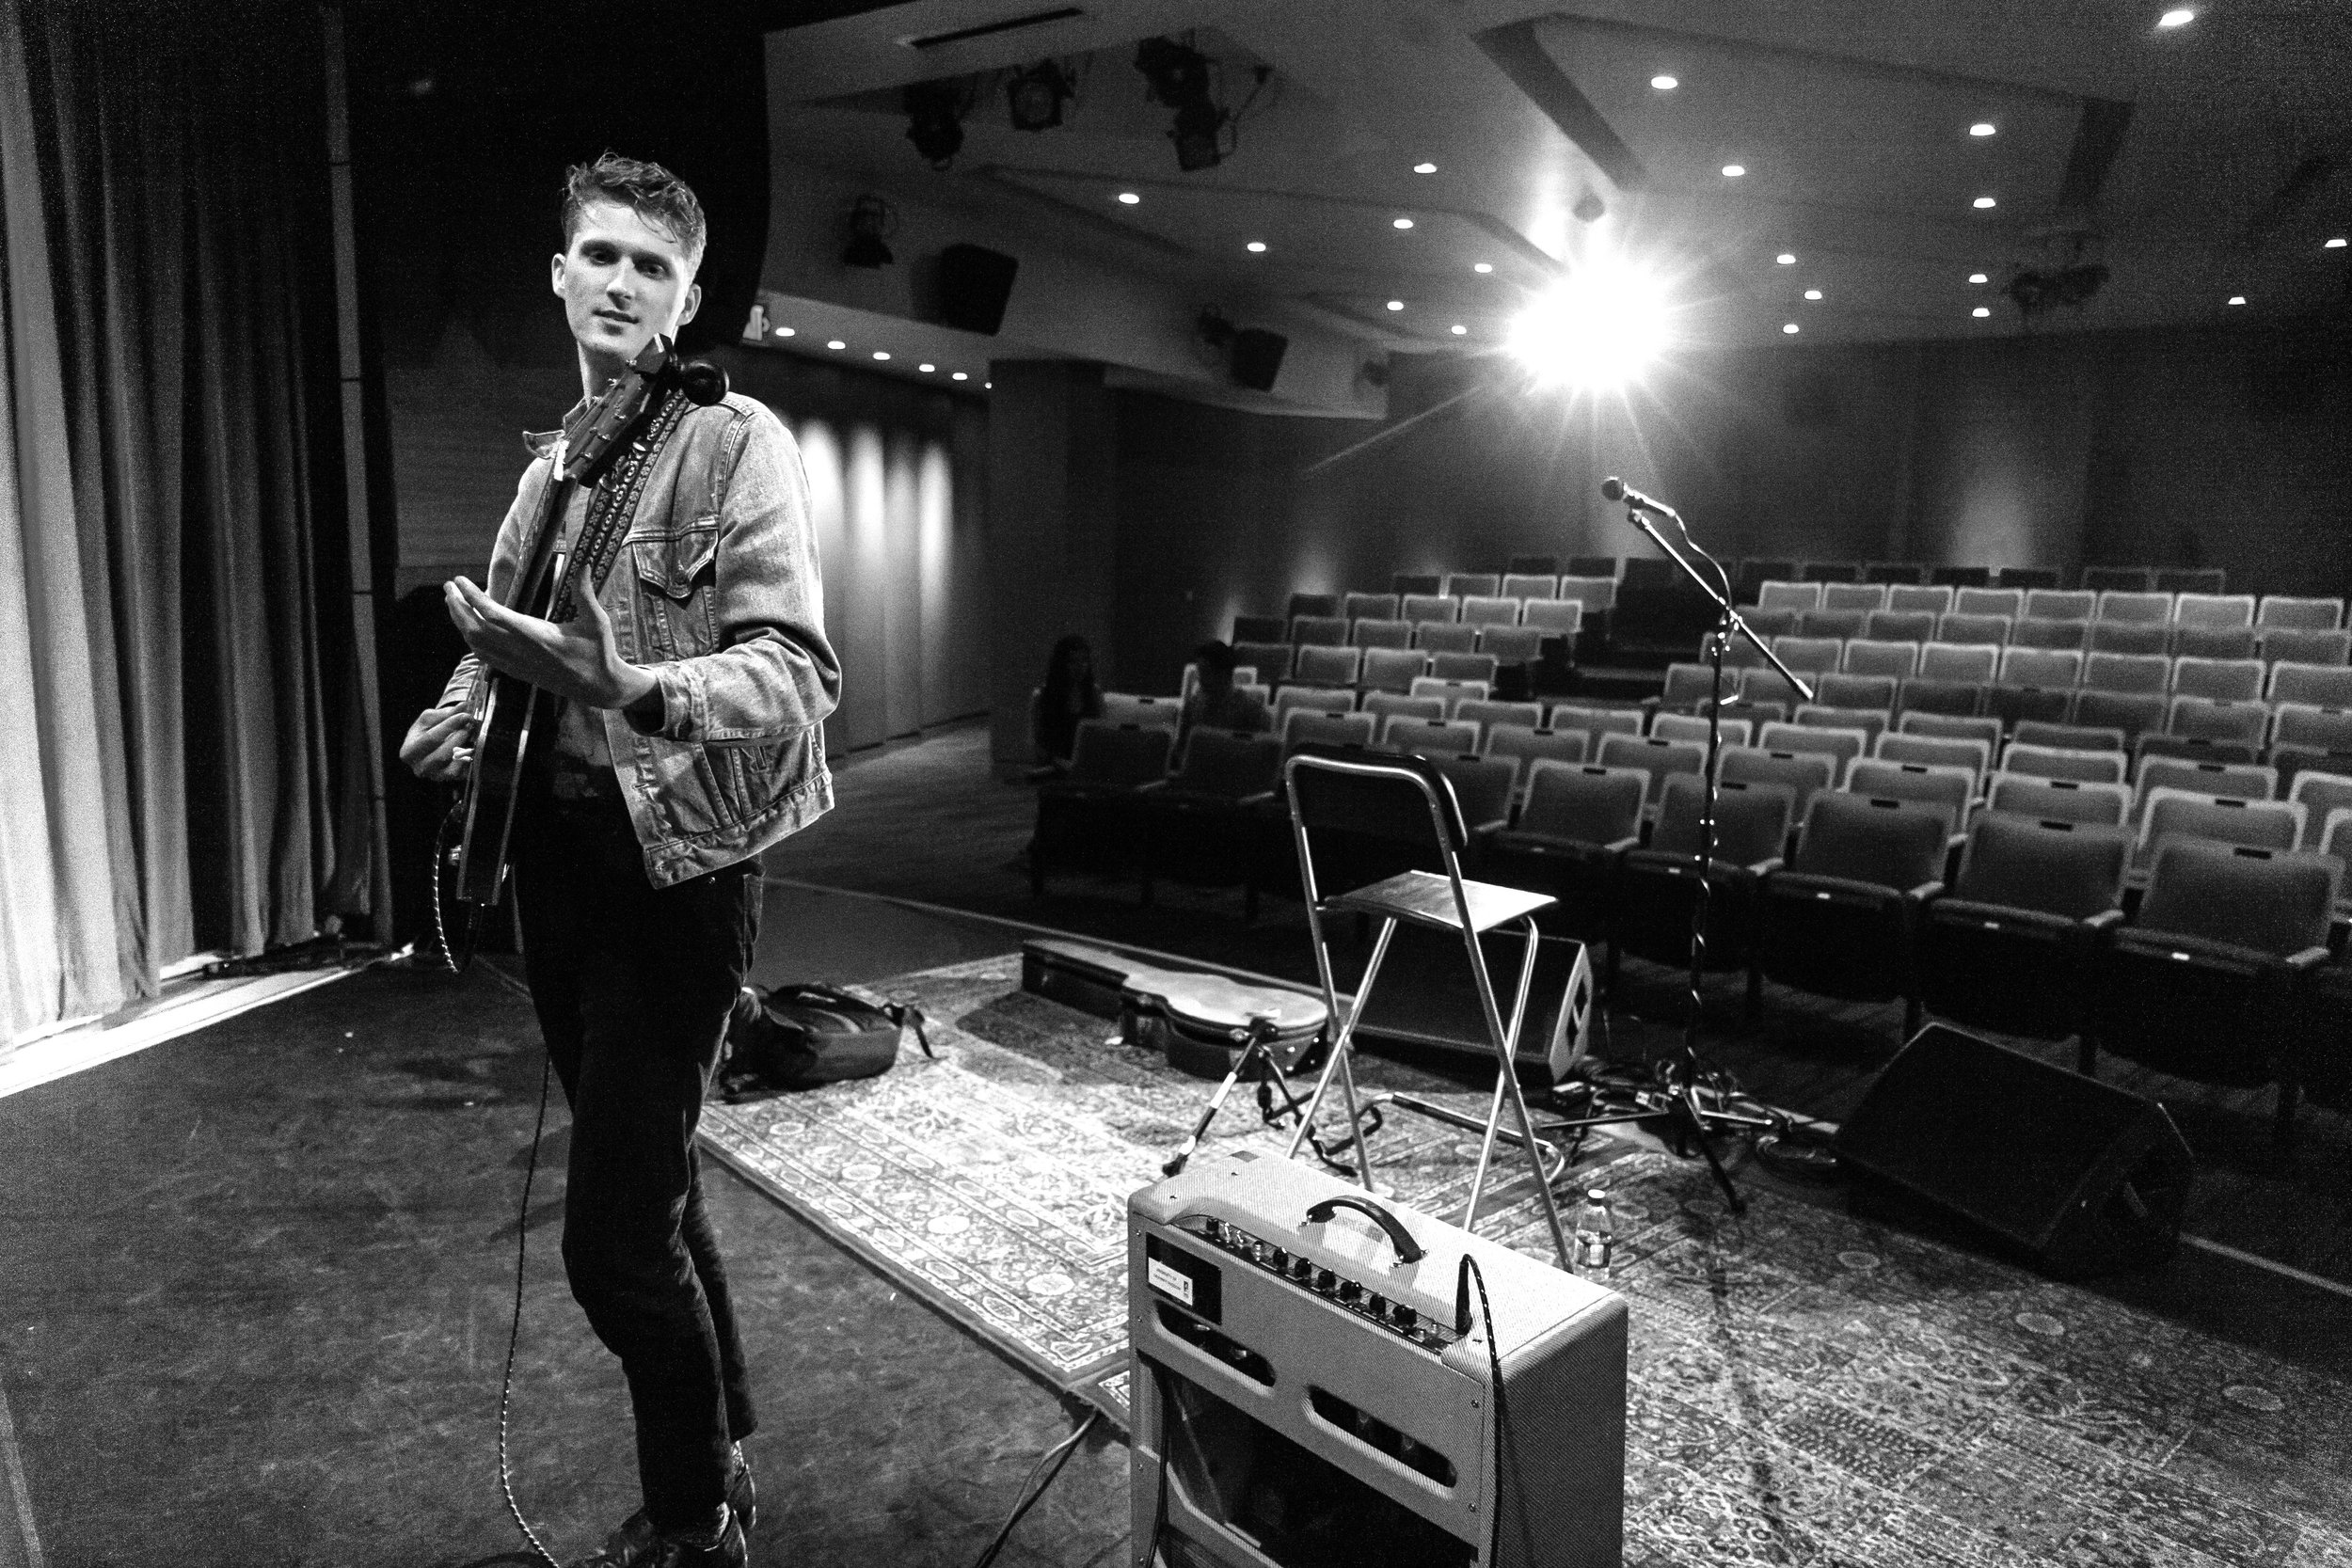 sound checking at the grammy museum in L.A. April 2016.